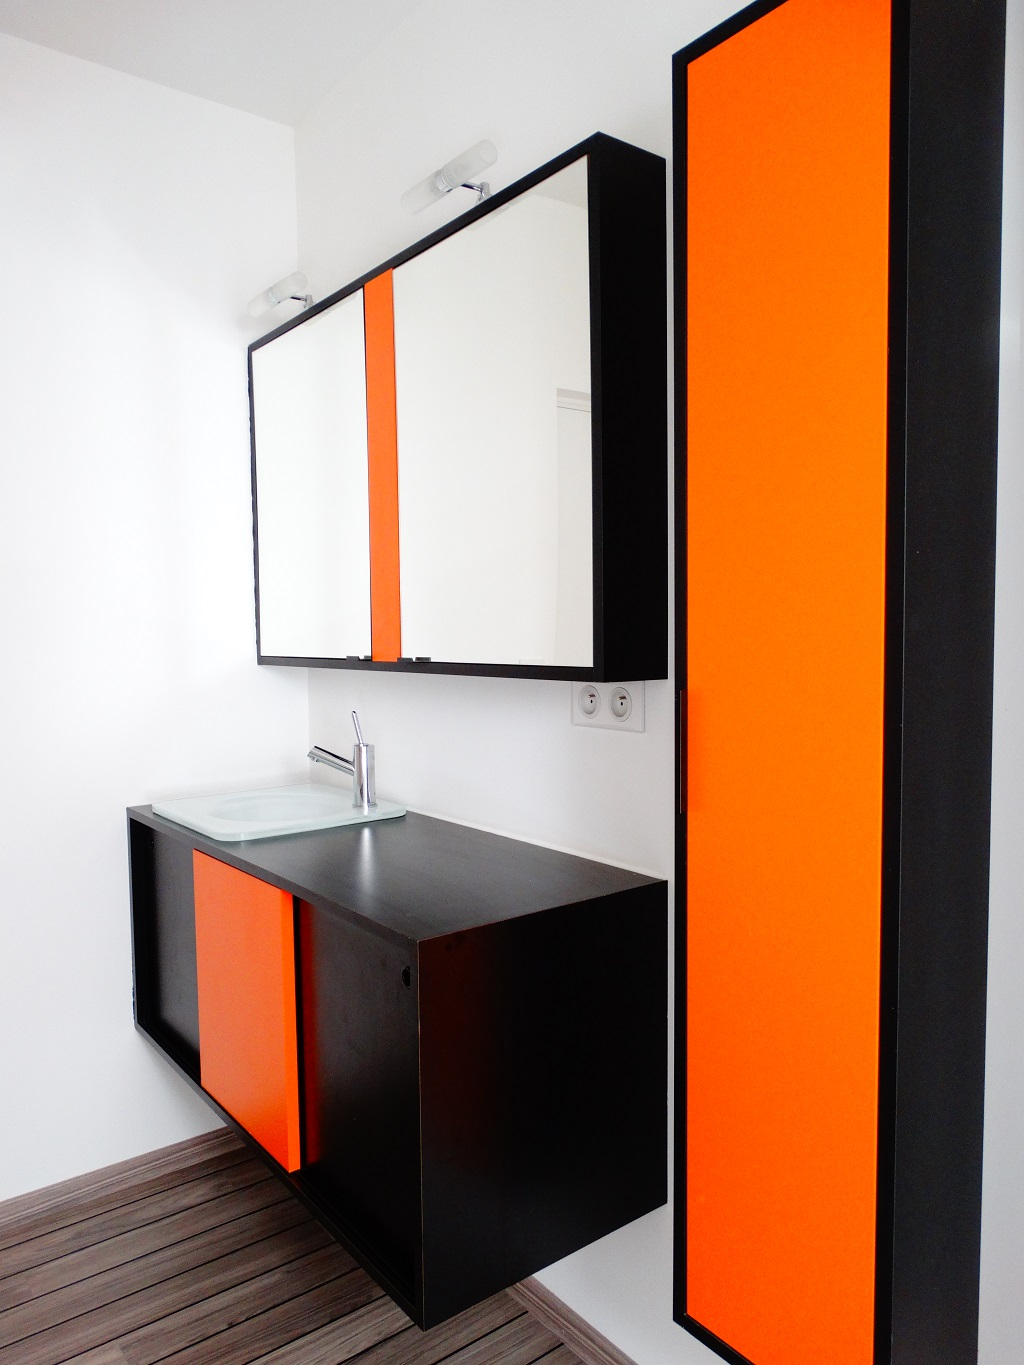 salle bain orange carrelage salle de bain orange photos de design d photo d coration salle de. Black Bedroom Furniture Sets. Home Design Ideas